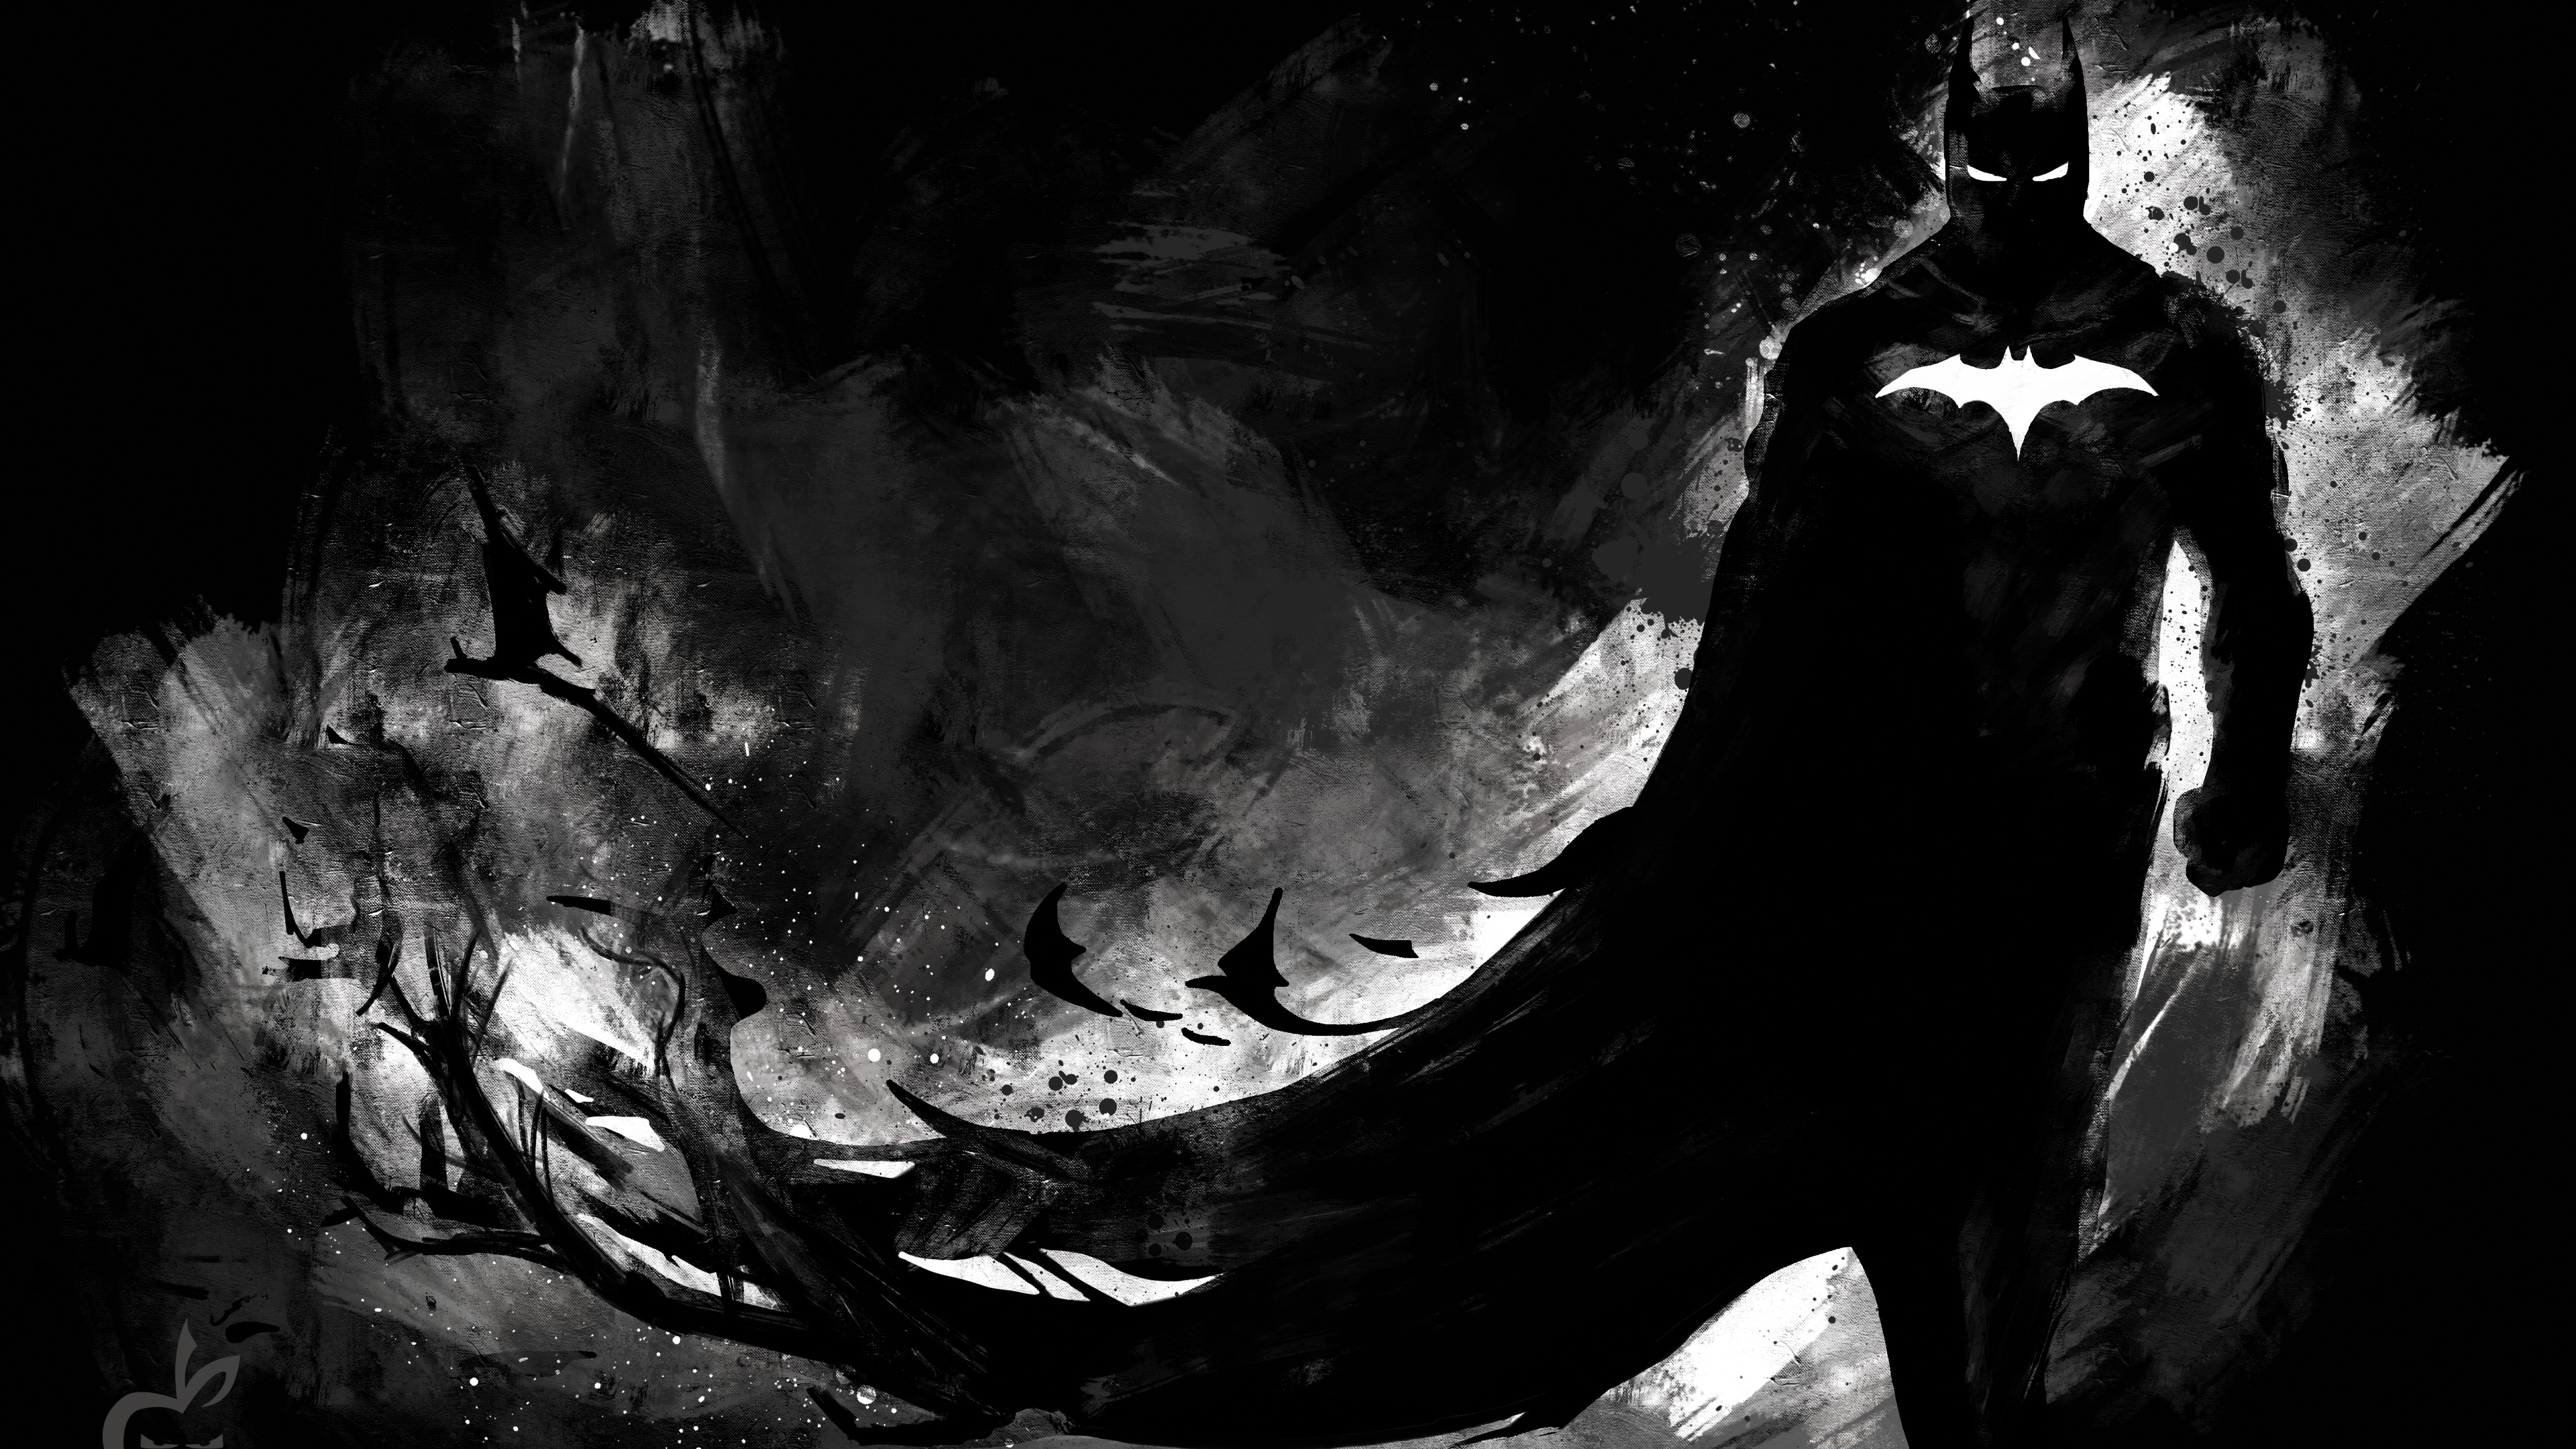 dark knight monochrome 4k 1547936607 - Dark Knight Monochrome 4k - superheroes wallpapers, hd-wallpapers, digital art wallpapers, batman wallpapers, artwork wallpapers, artist wallpapers, 5k wallpapers, 4k-wallpapers